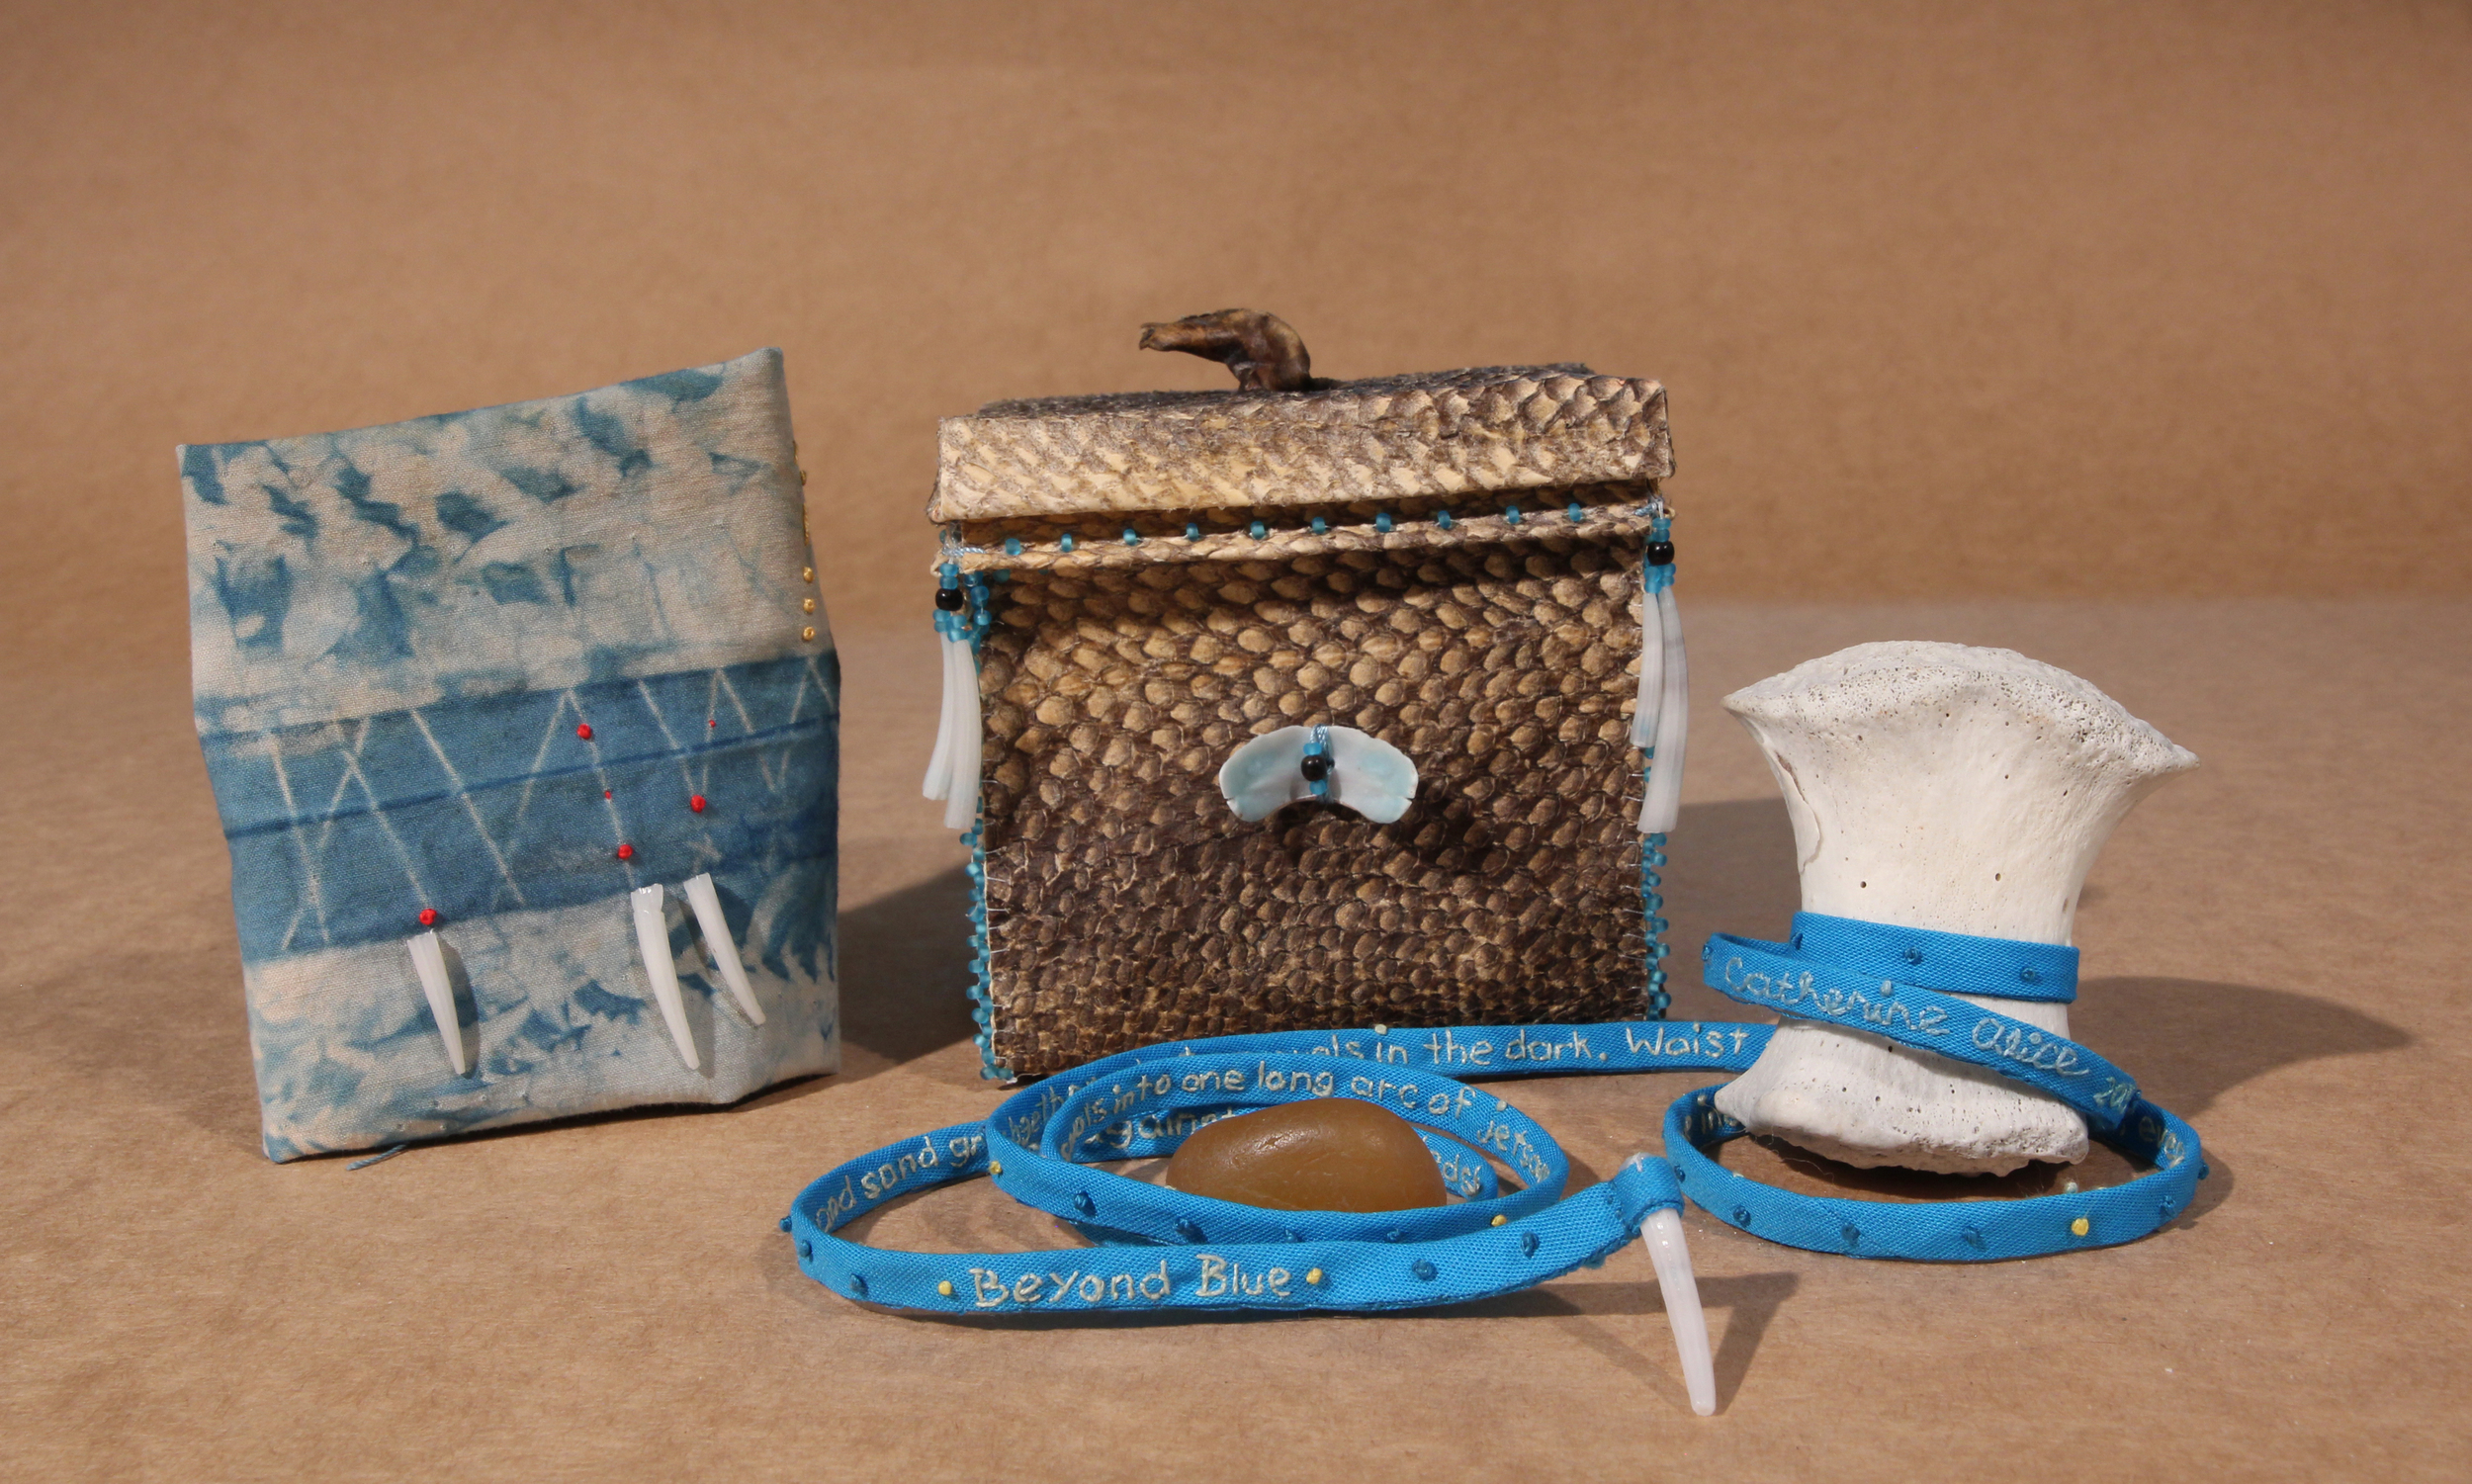 Beyond Blue  , 2016. Embroidered text spooled on a seal's knuckle bone, beaded salmon leather box lined with indigo dyed cotton. Agate and embroidered map on indigo dyed cotton included.